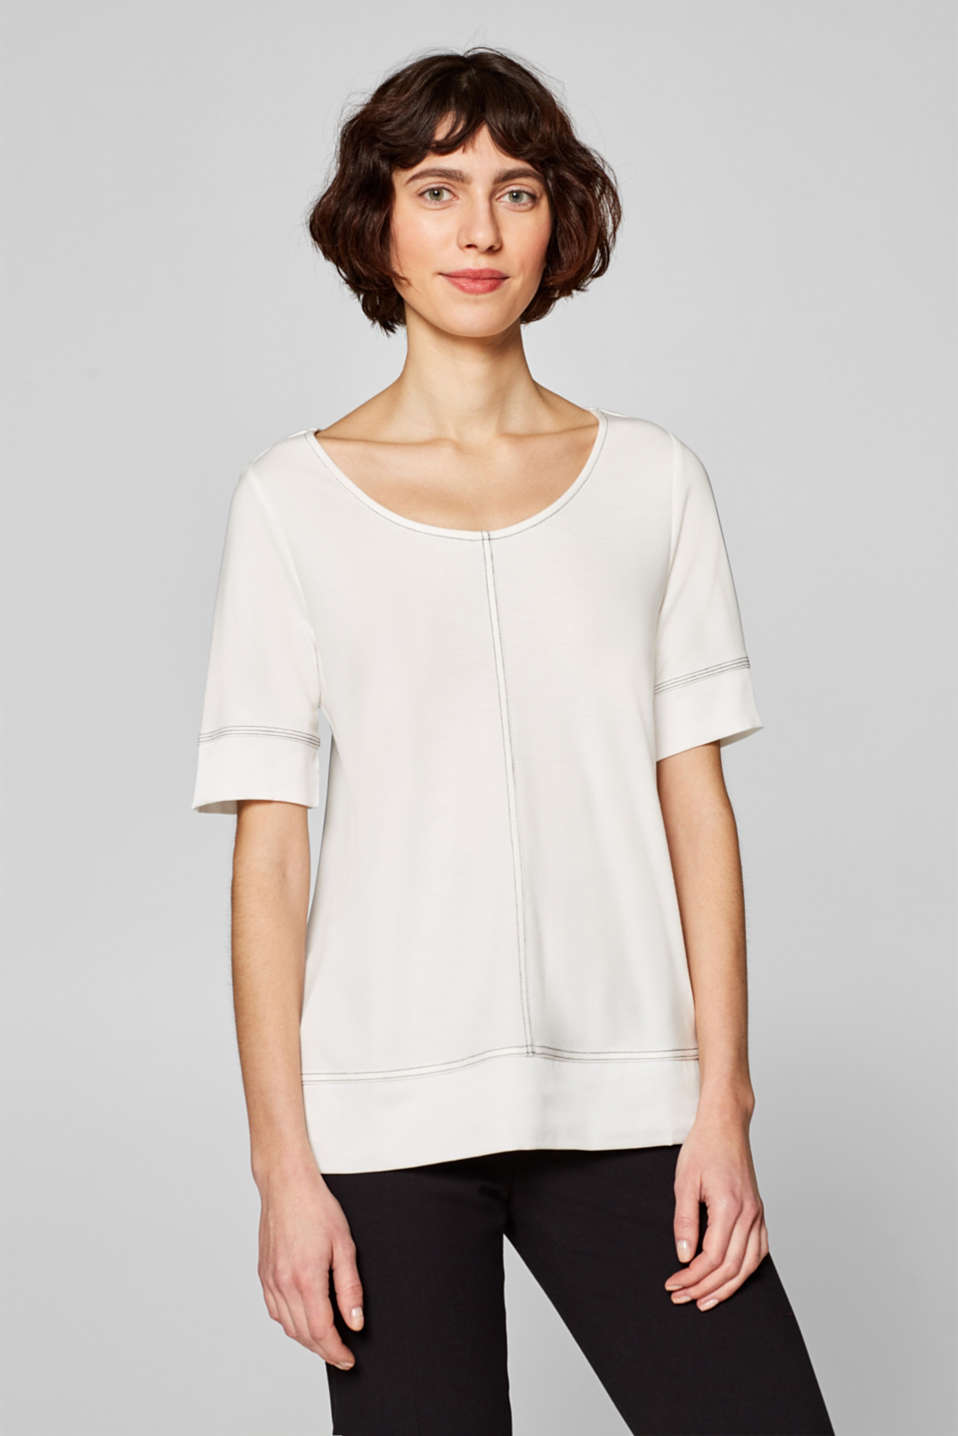 Esprit - T-shirt with decorative stitching and crêpe details